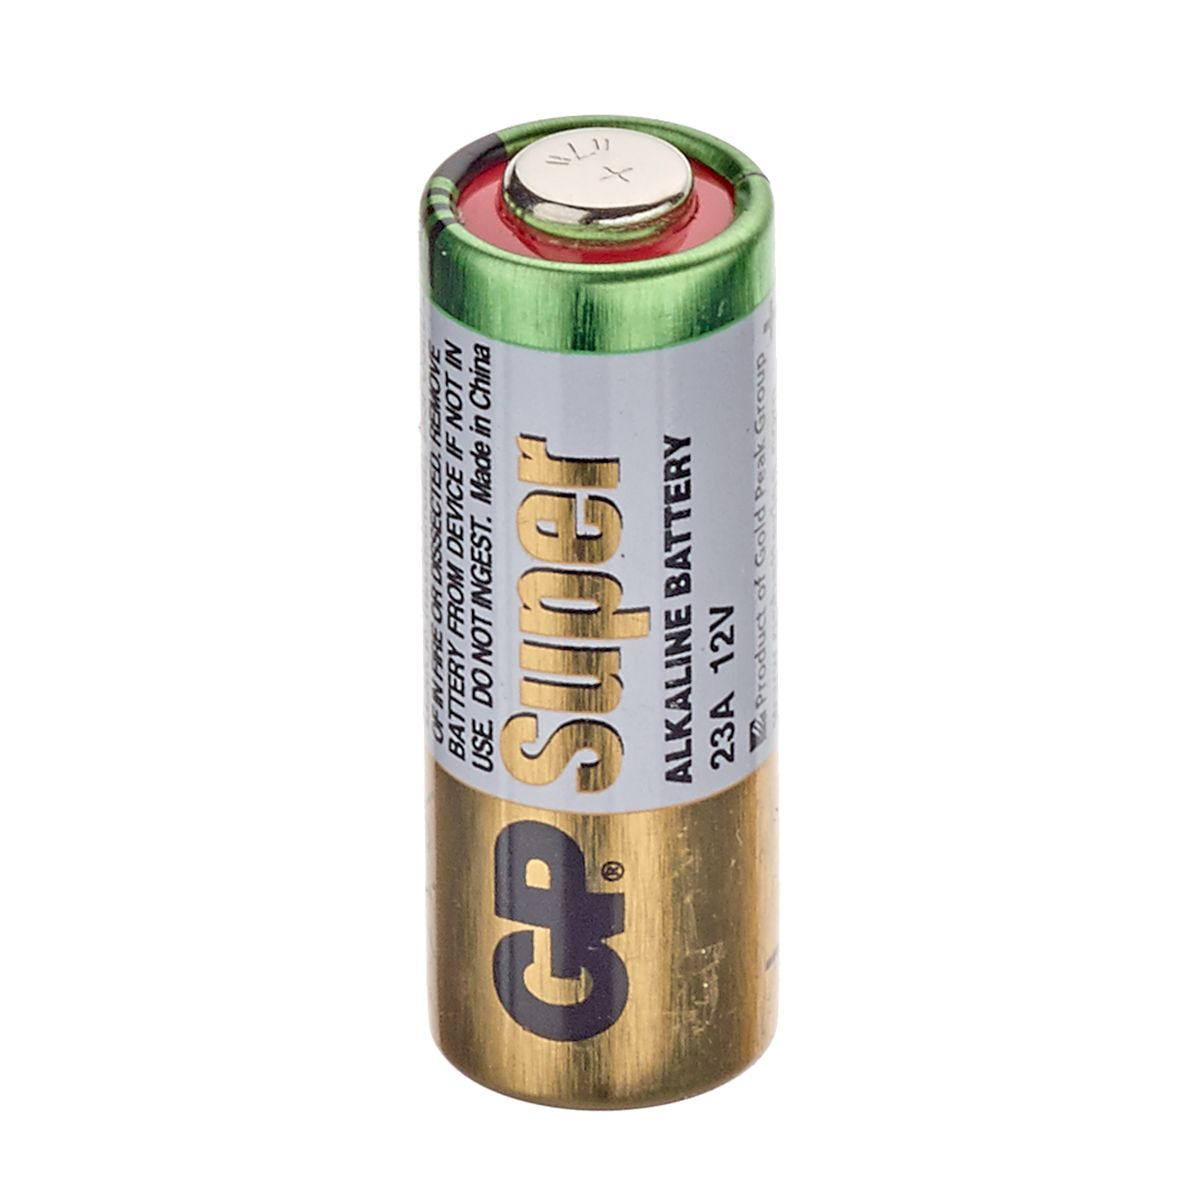 GP 23 A 12 V battery | Computer Battery and Charger